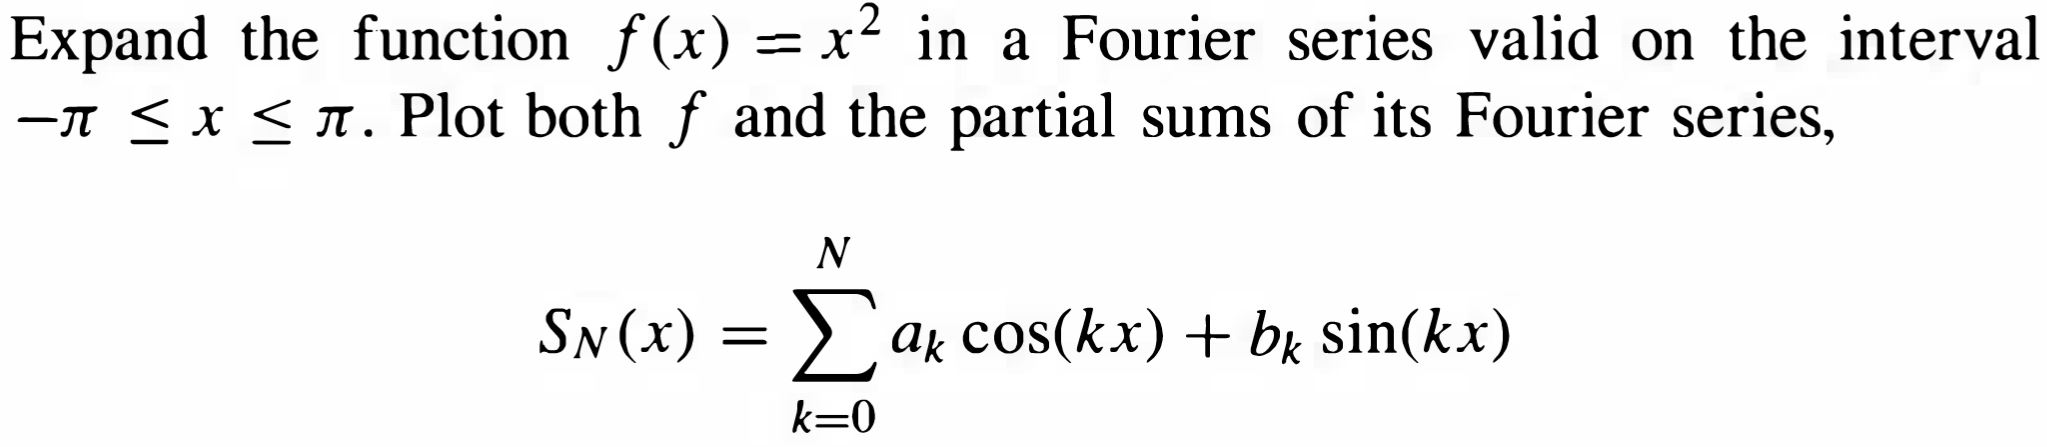 Expand the function f(x) = x2 in a Fourier series valid on the interval -1 < x < 1. Plot both f and the partial sums of its F